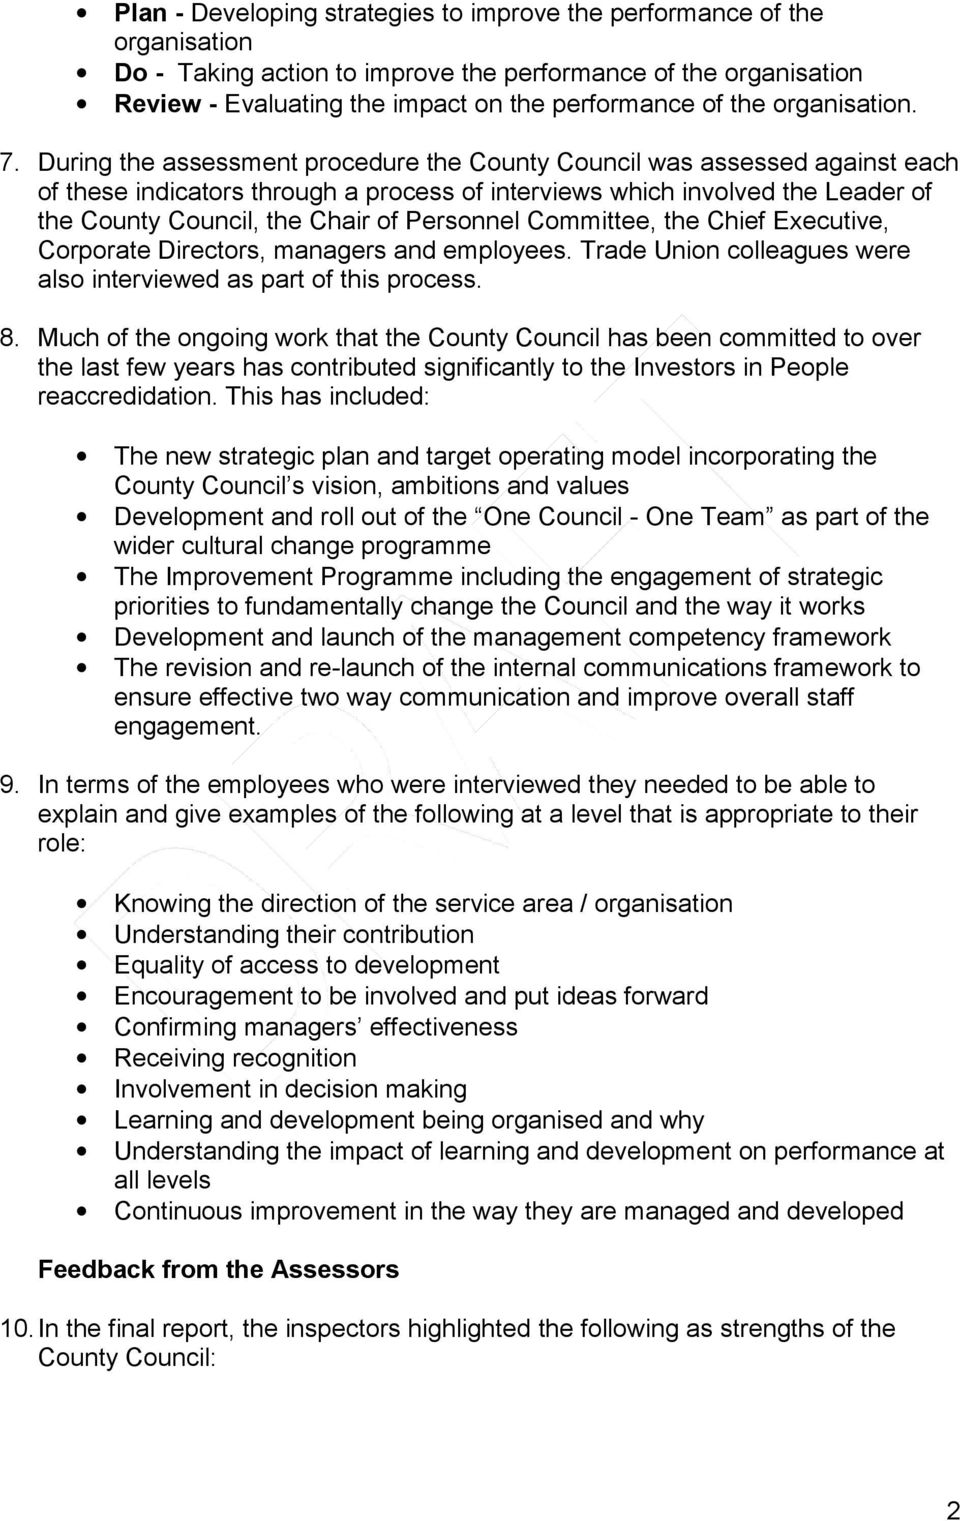 During the assessment procedure the County Council was assessed against each of these indicators through a process of interviews which involved the Leader of the County Council, the Chair of